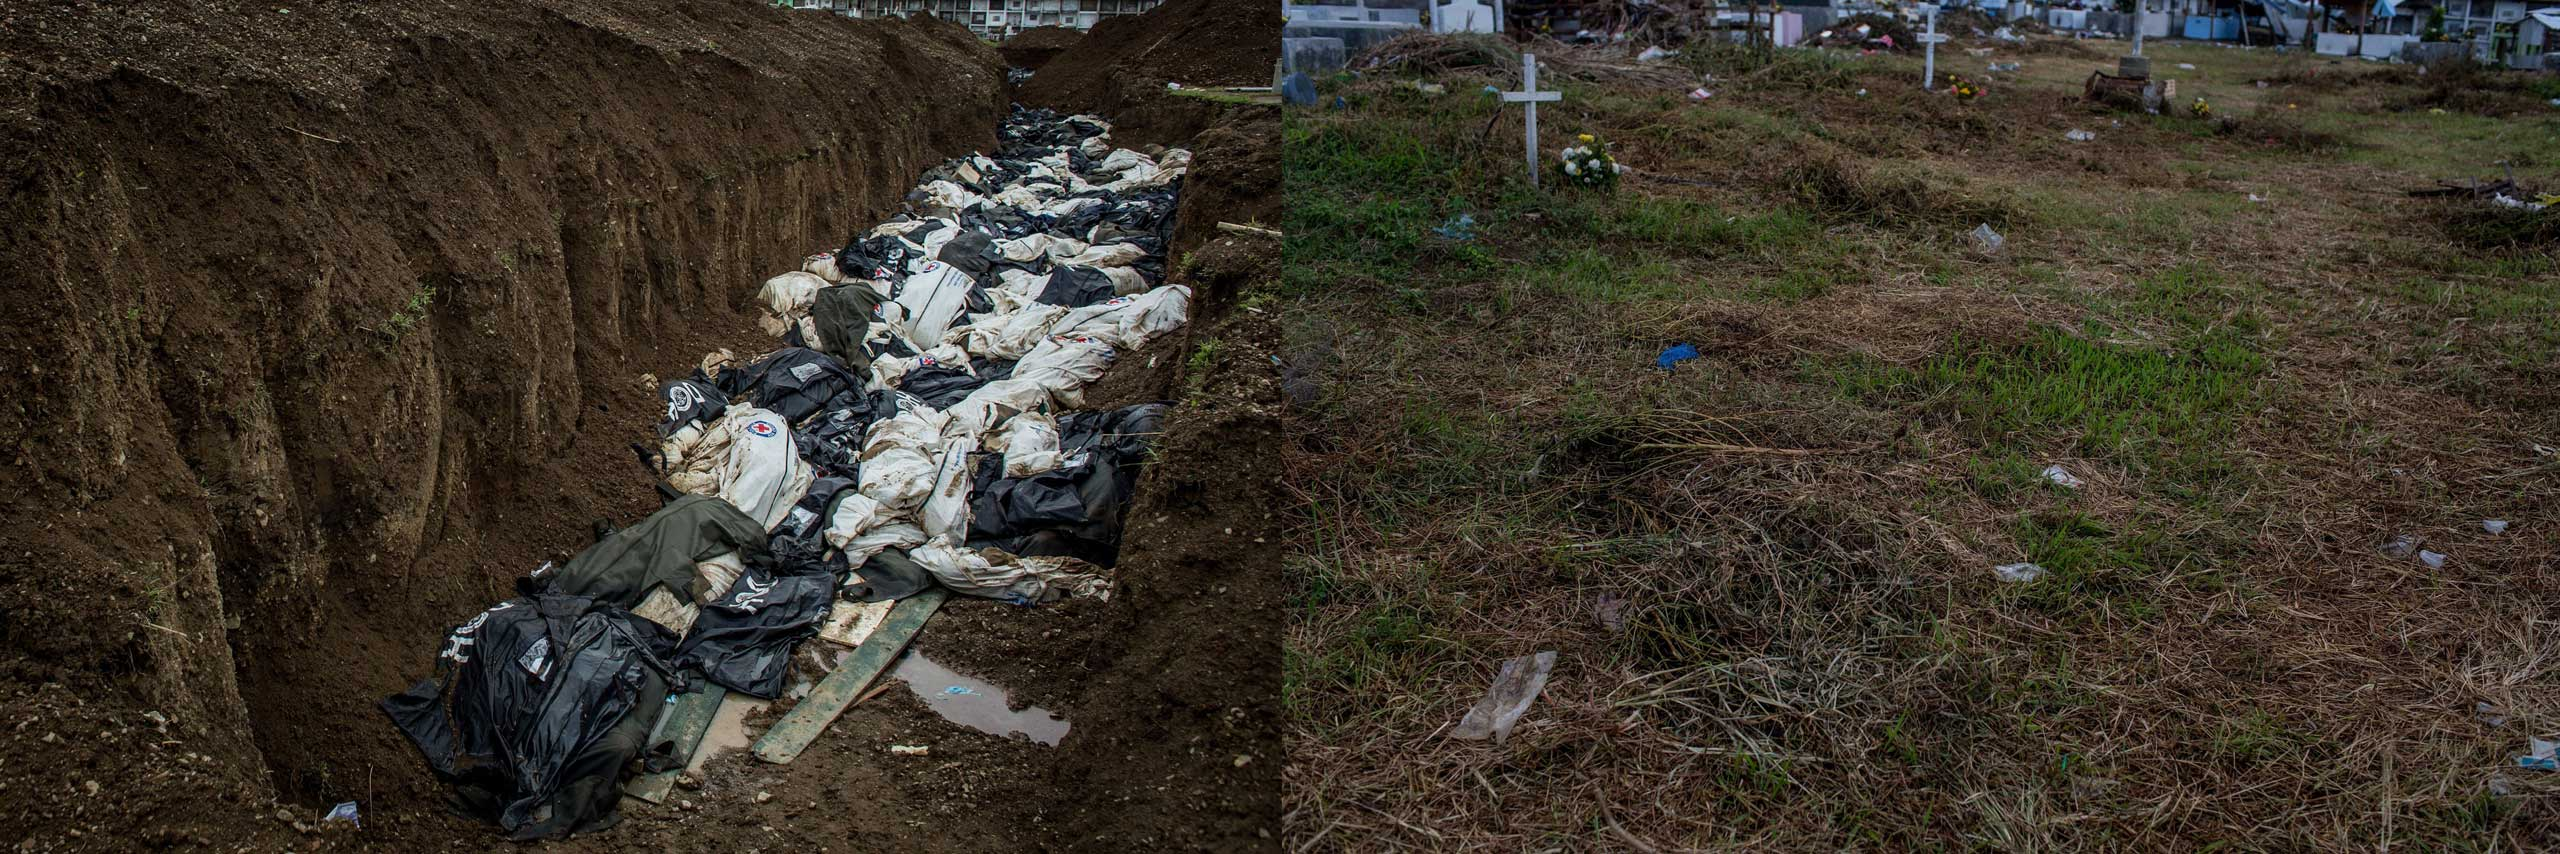 Before: Bodies are seen in a mass grave on the outskirts of Tacloban City on Nov. 20, 2013 in Leyte, Philippines.After: View of the mass grave site at Basper Cemetary one year after Typhoon Haiyan  on Nov. 3, 2014.